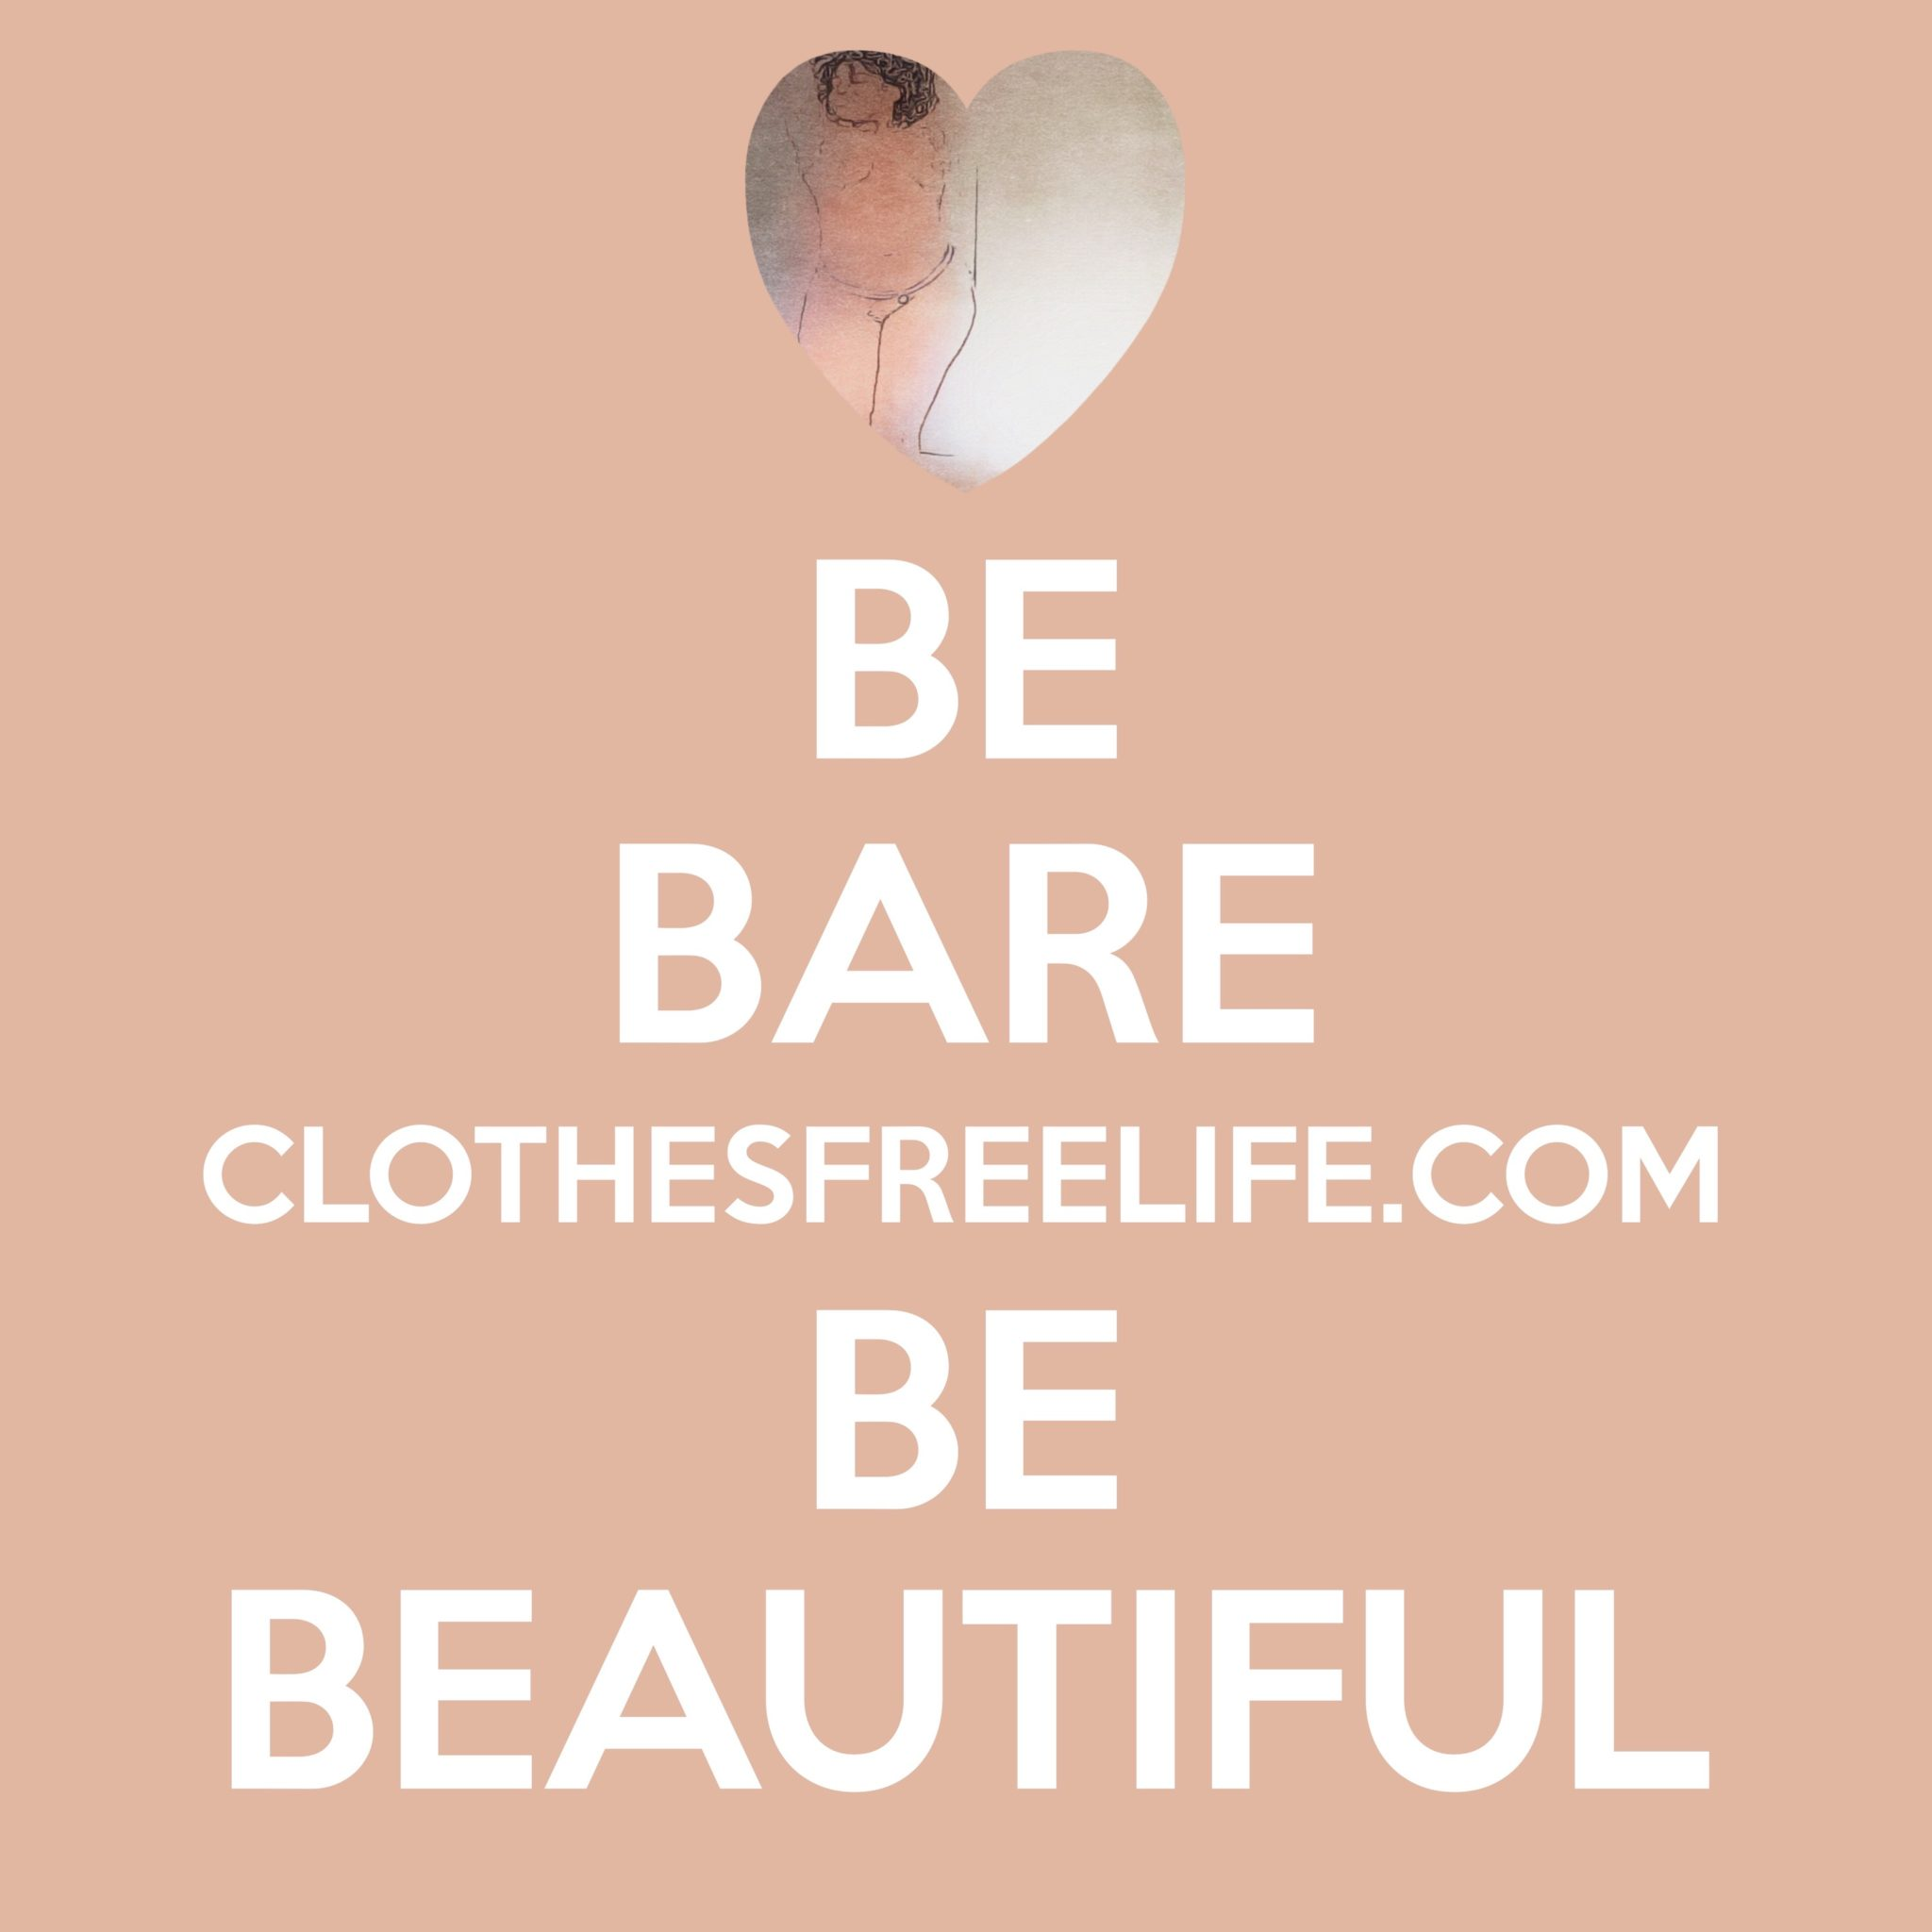 Be bare and be beautiful